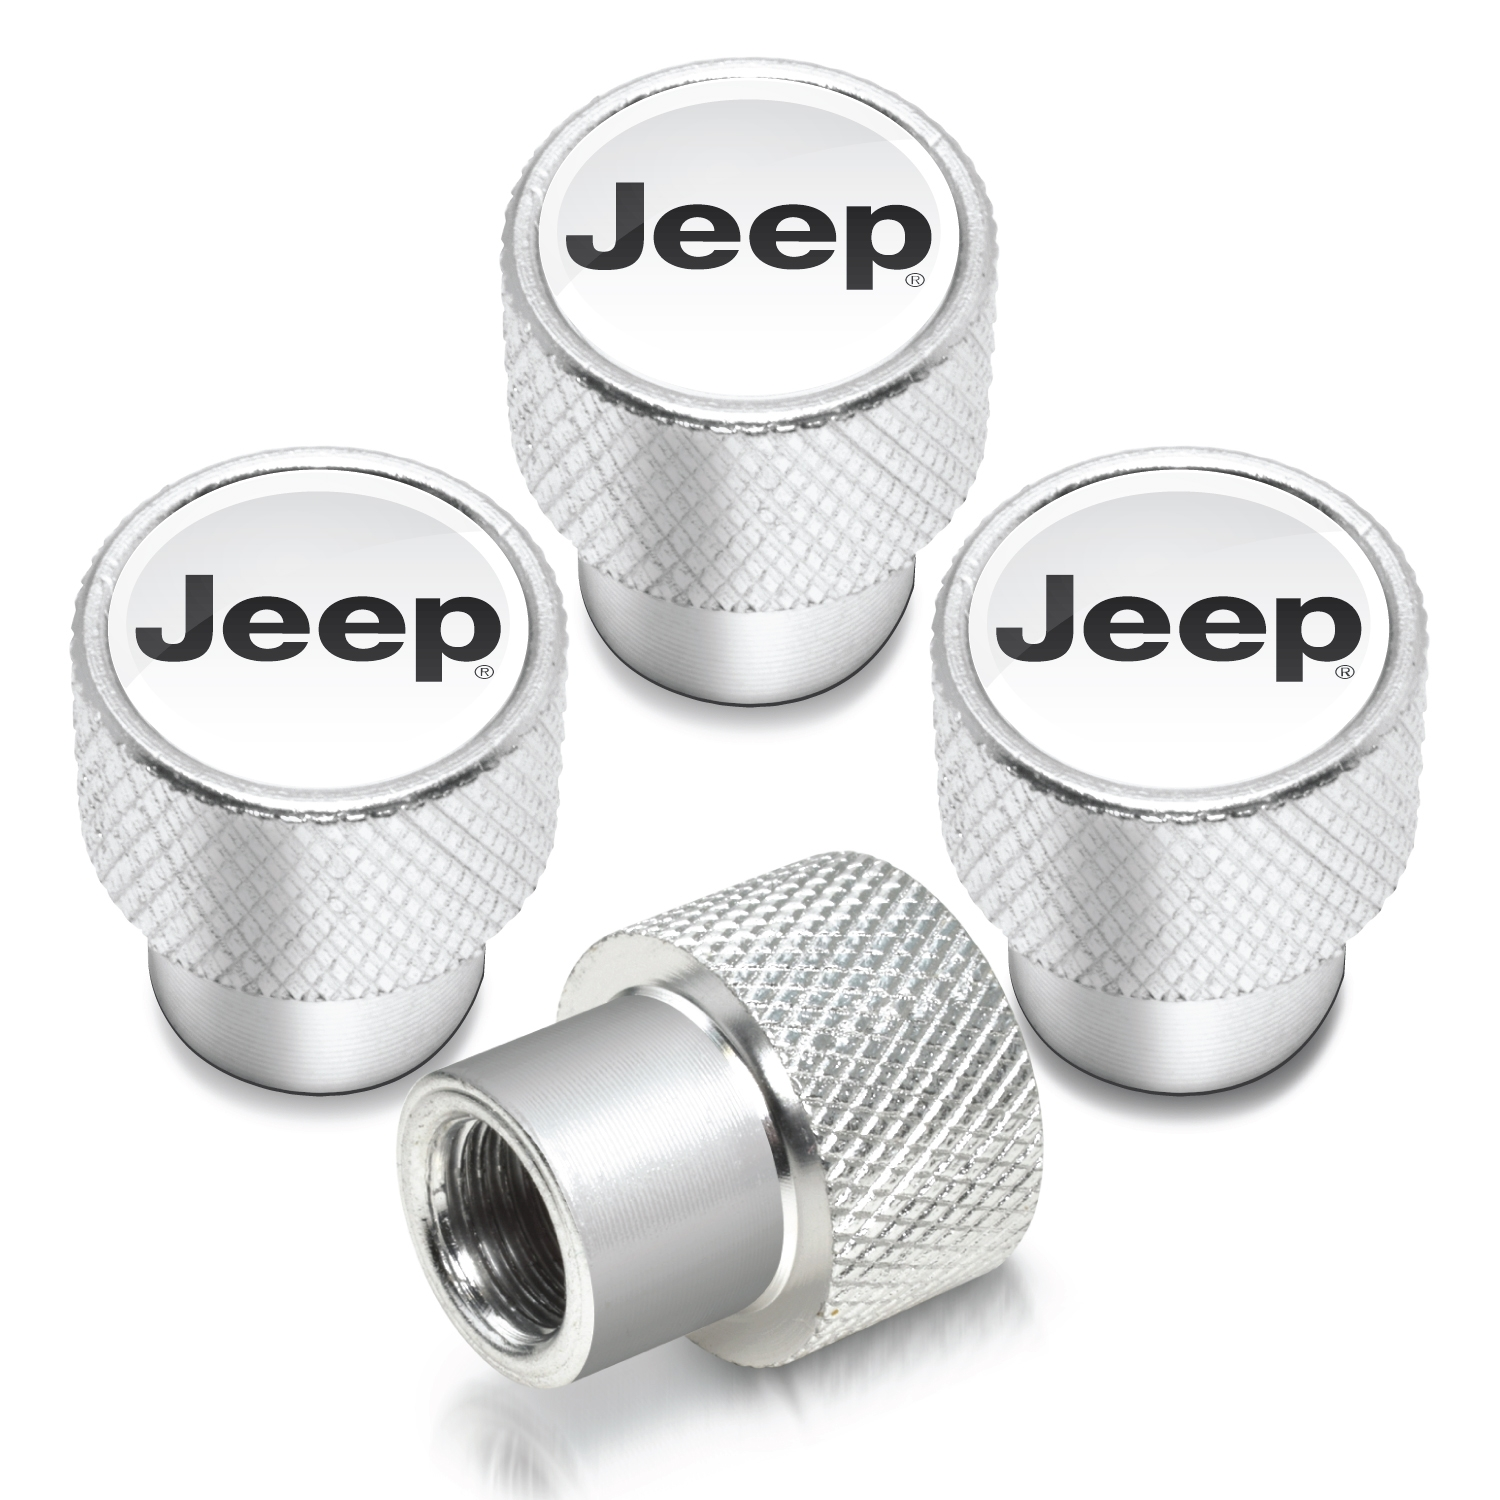 Jeep in White on Shining Silver Aluminum Tire Valve Stem Caps